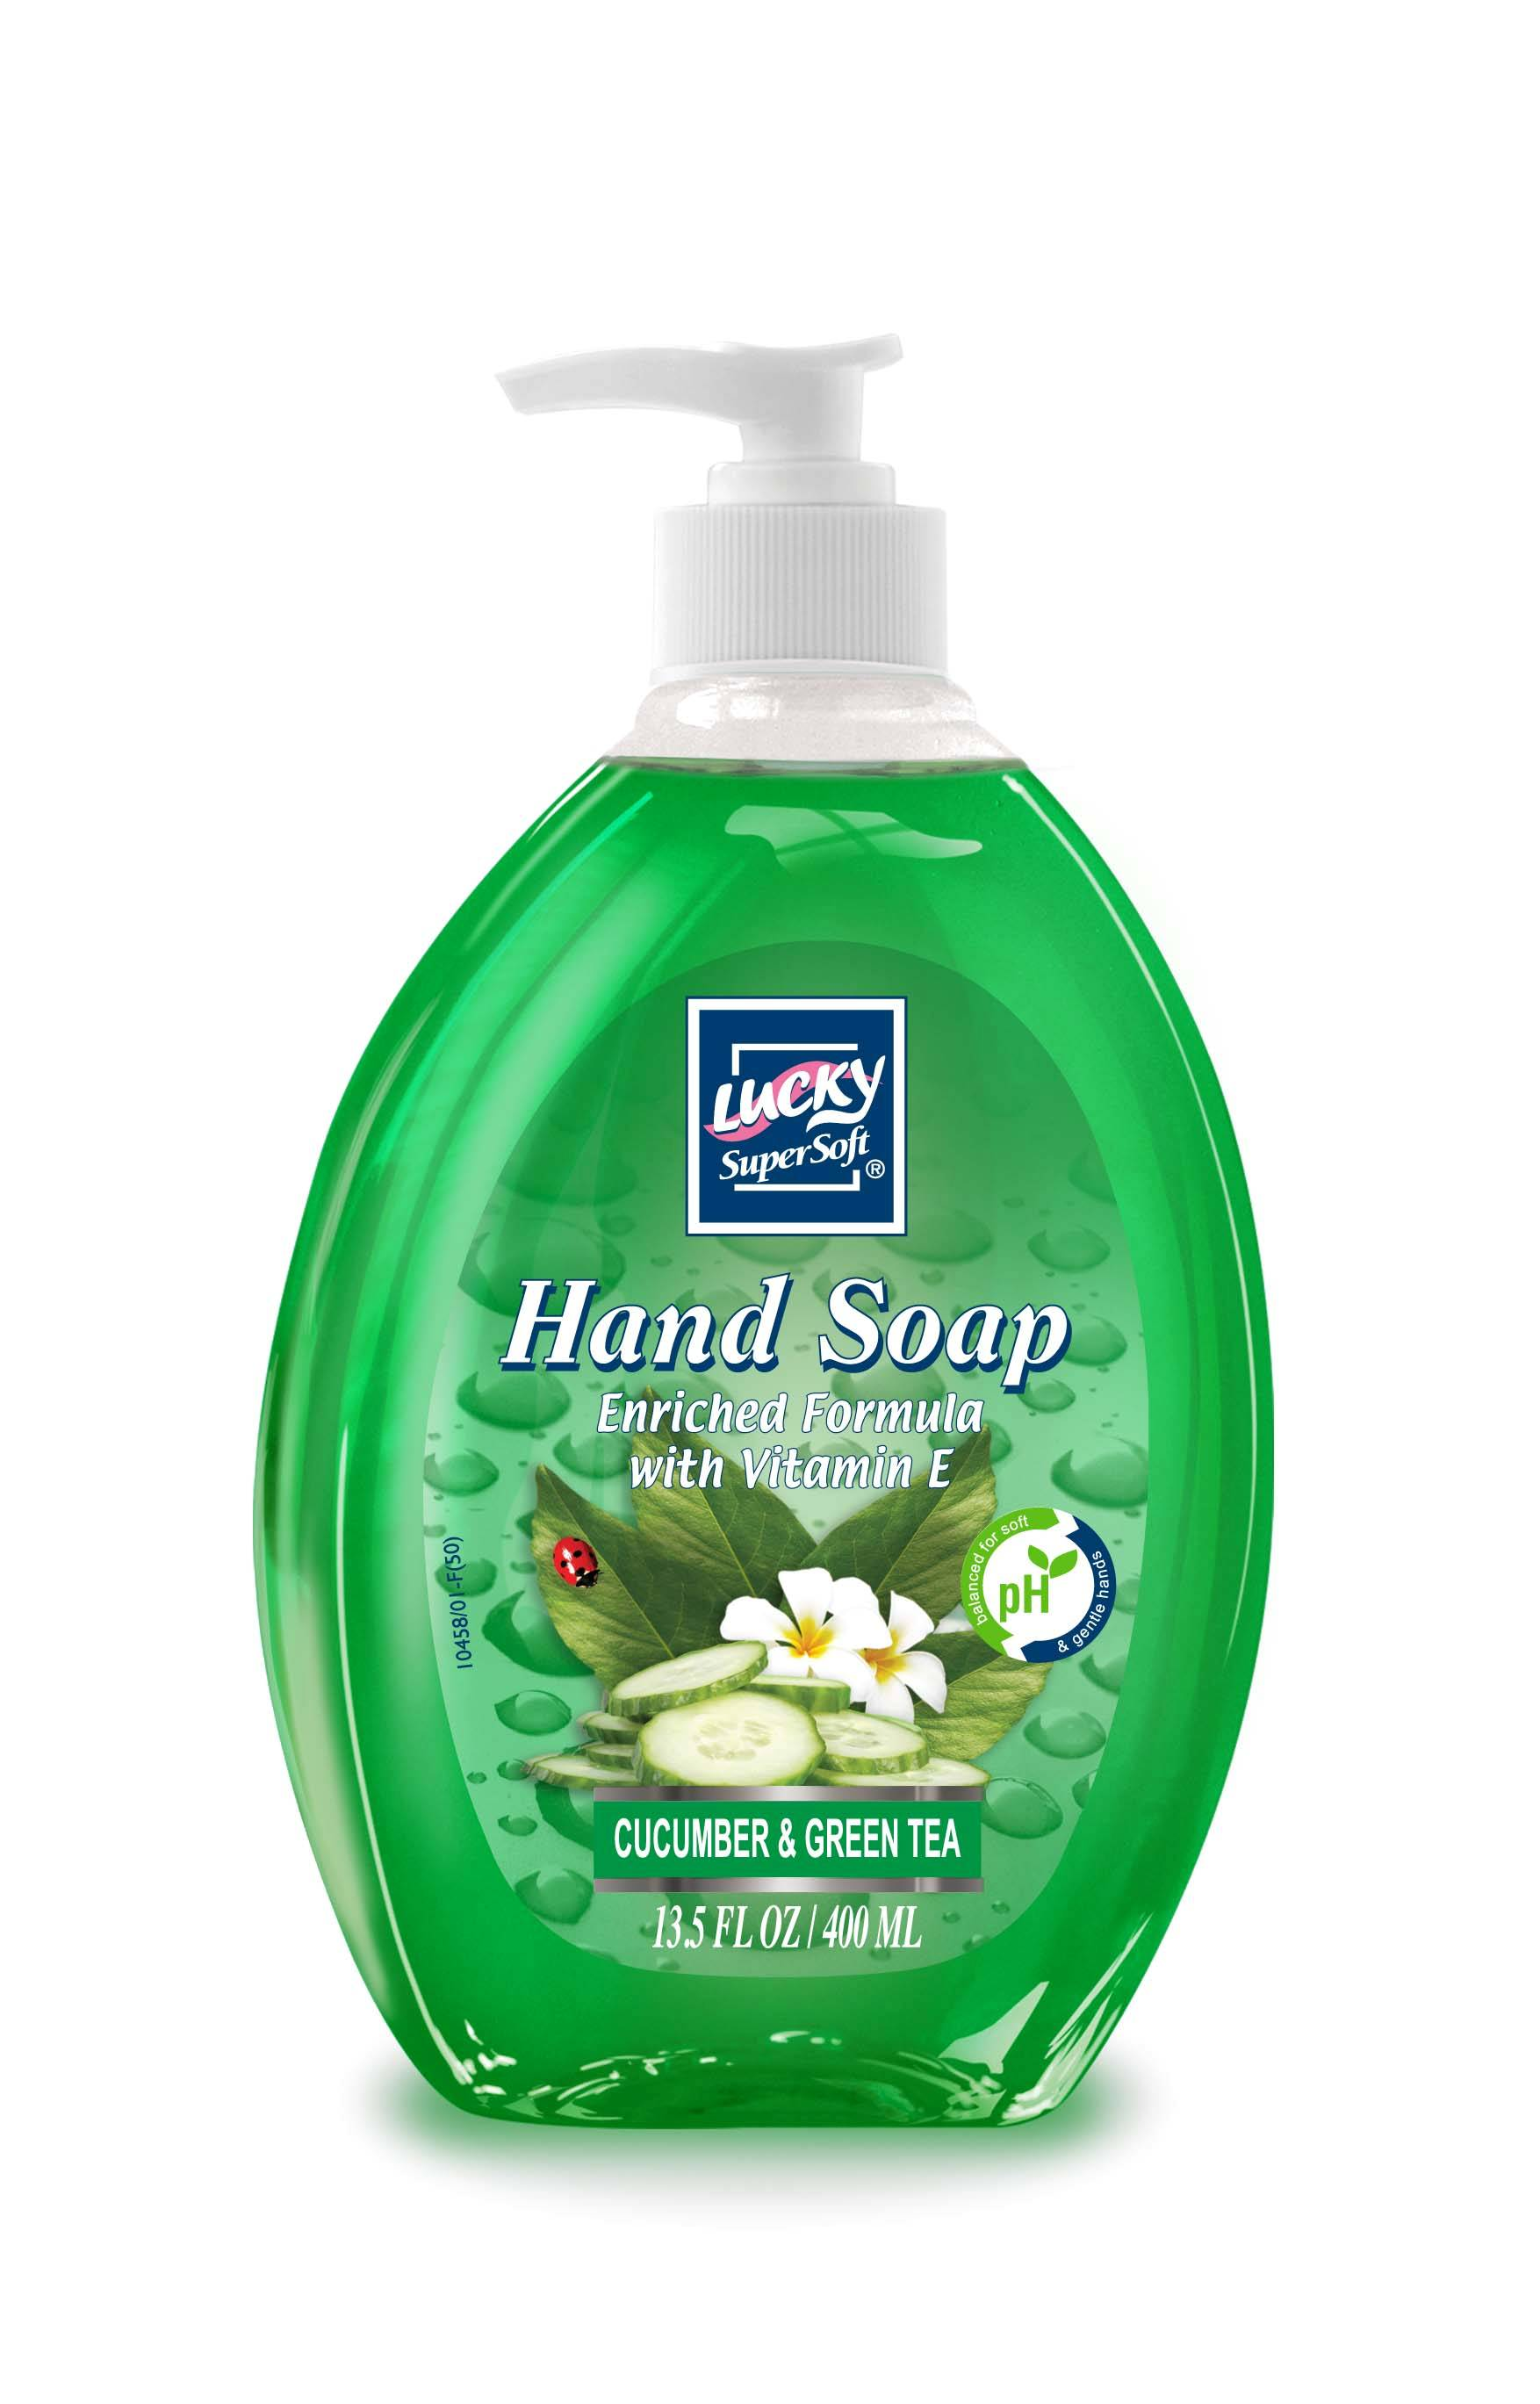 Hand Soap Wholesale Distributor Of Food Service Sanitary Circuit Board Plastic Lotion Dispenser Select Size Potty Delta Brands 135oz Lucky Super Soft Cucumber And Green Tea Liquid Pump 3226